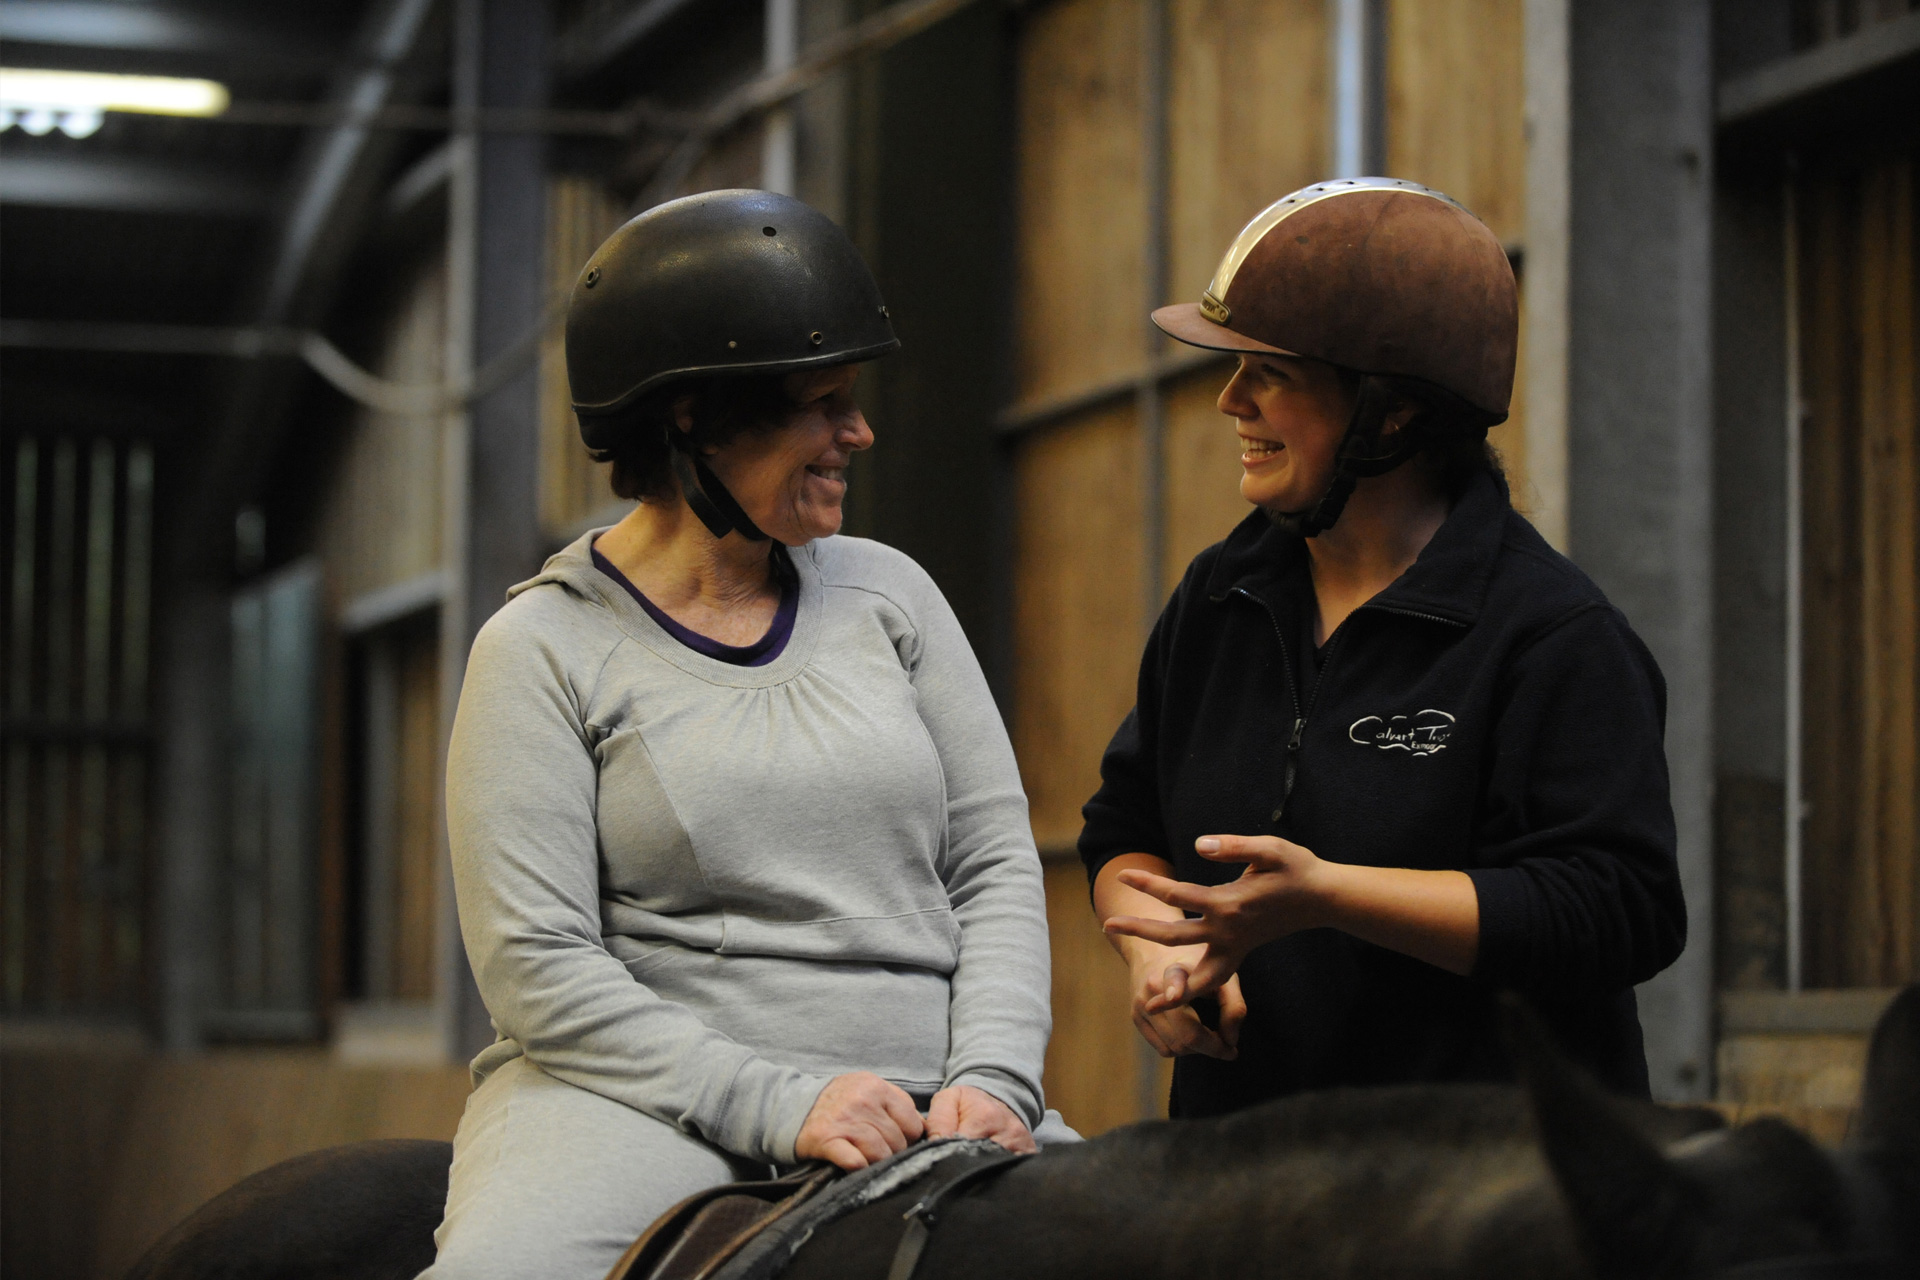 A lady sat on top of a black horse chatting to a member of the Calvert Trust stables volunteer team in the indoor arena, both smiling